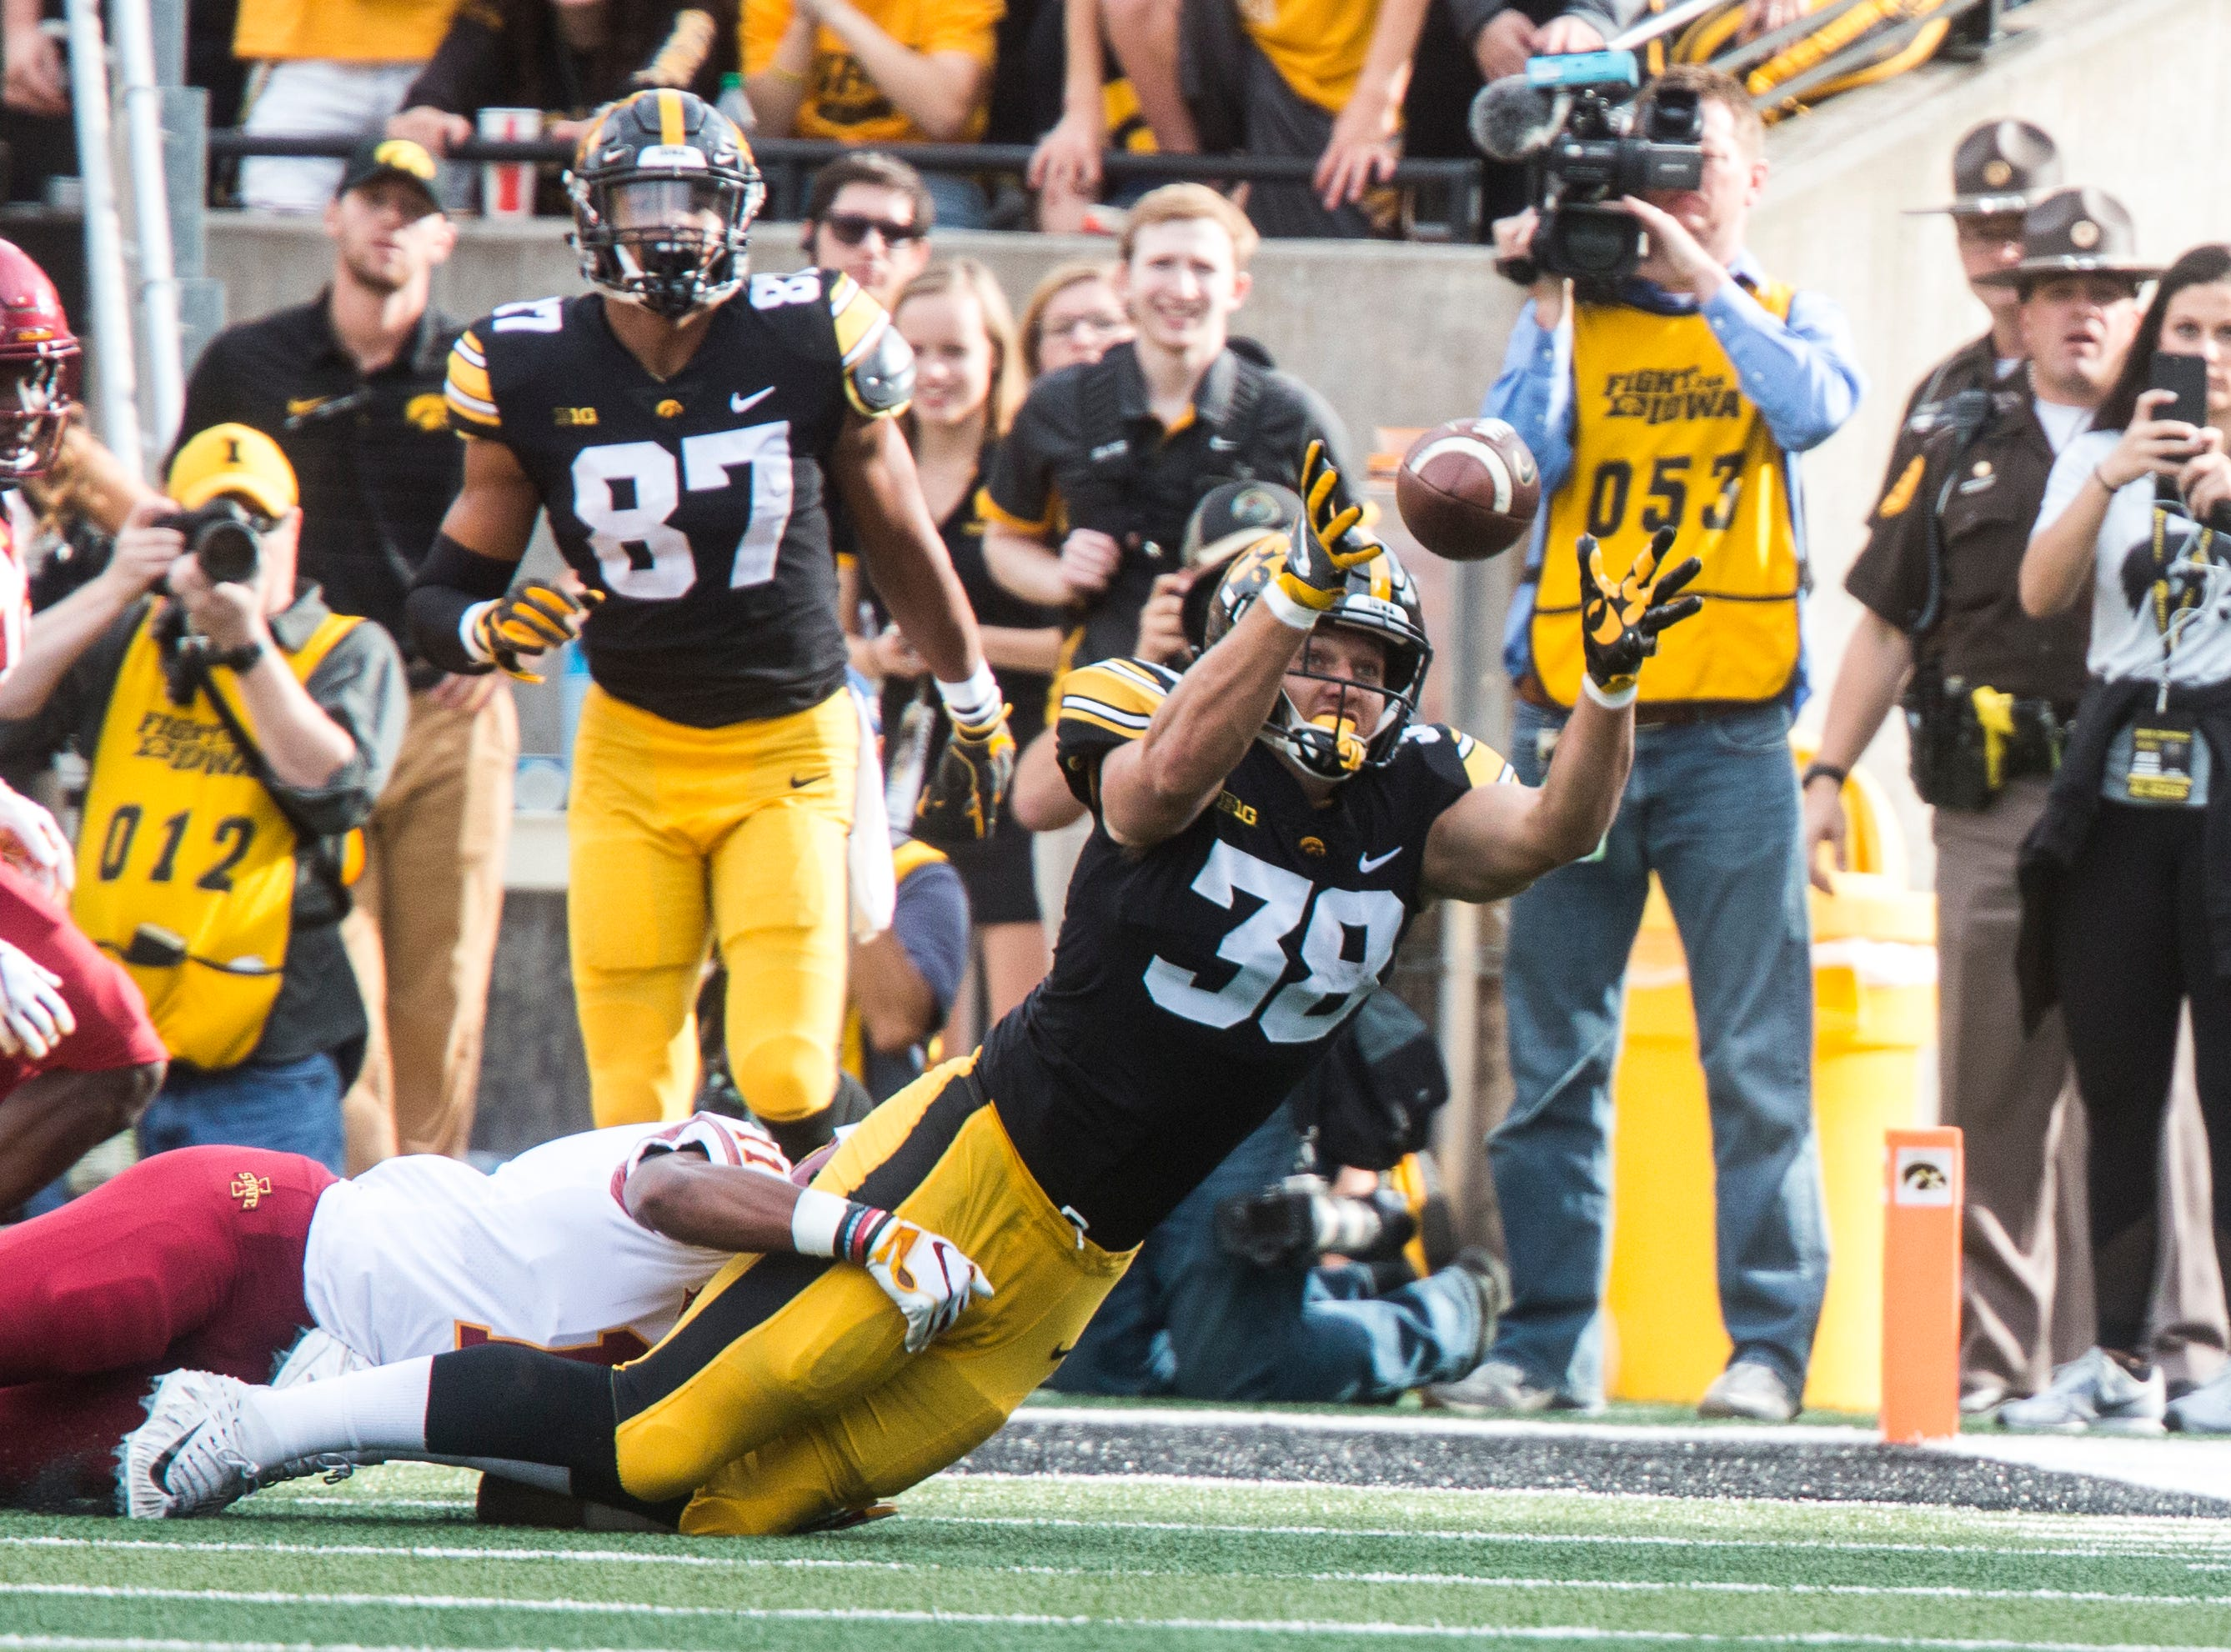 Iowa tight end T.J. Hockenson (38) attempts to catch a tipped pass during the Cy-Hawk NCAA football game on Saturday, Sept. 8, 2018, at Kinnick Stadium in Iowa City.